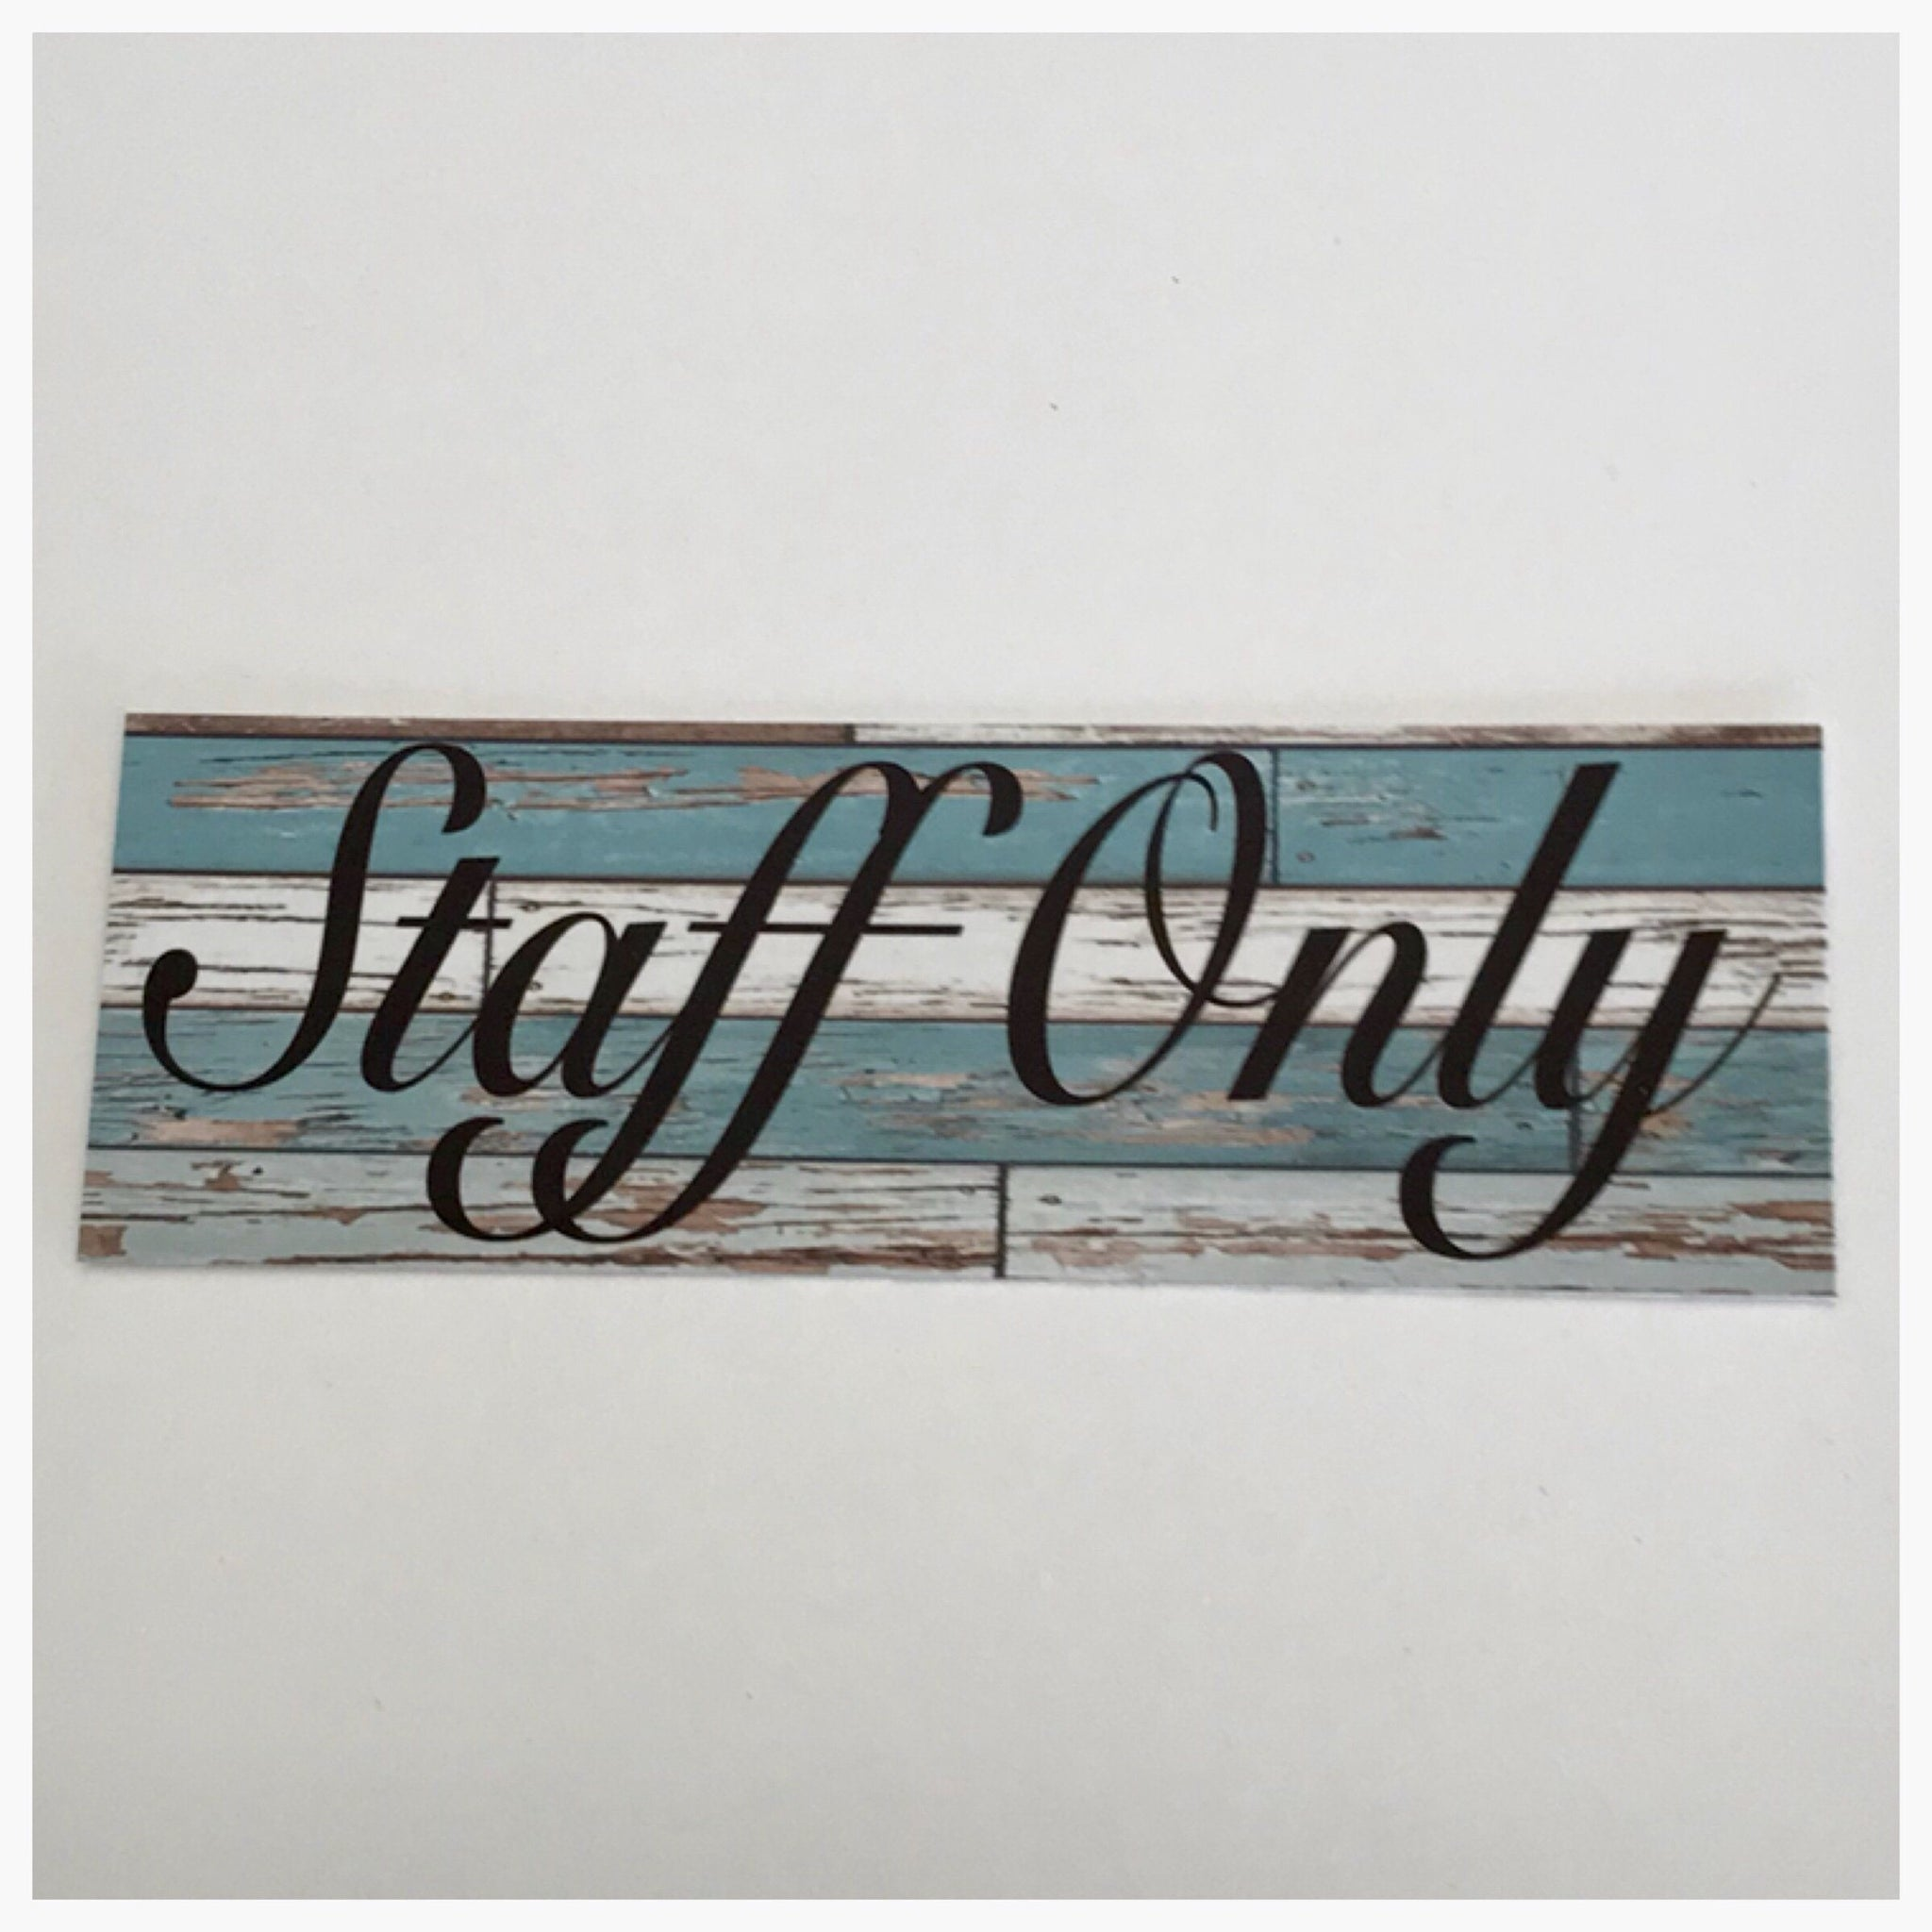 Staff Only Elegant Rustic Blue Sign Wall Plaque or Hanging - The Renmy Store